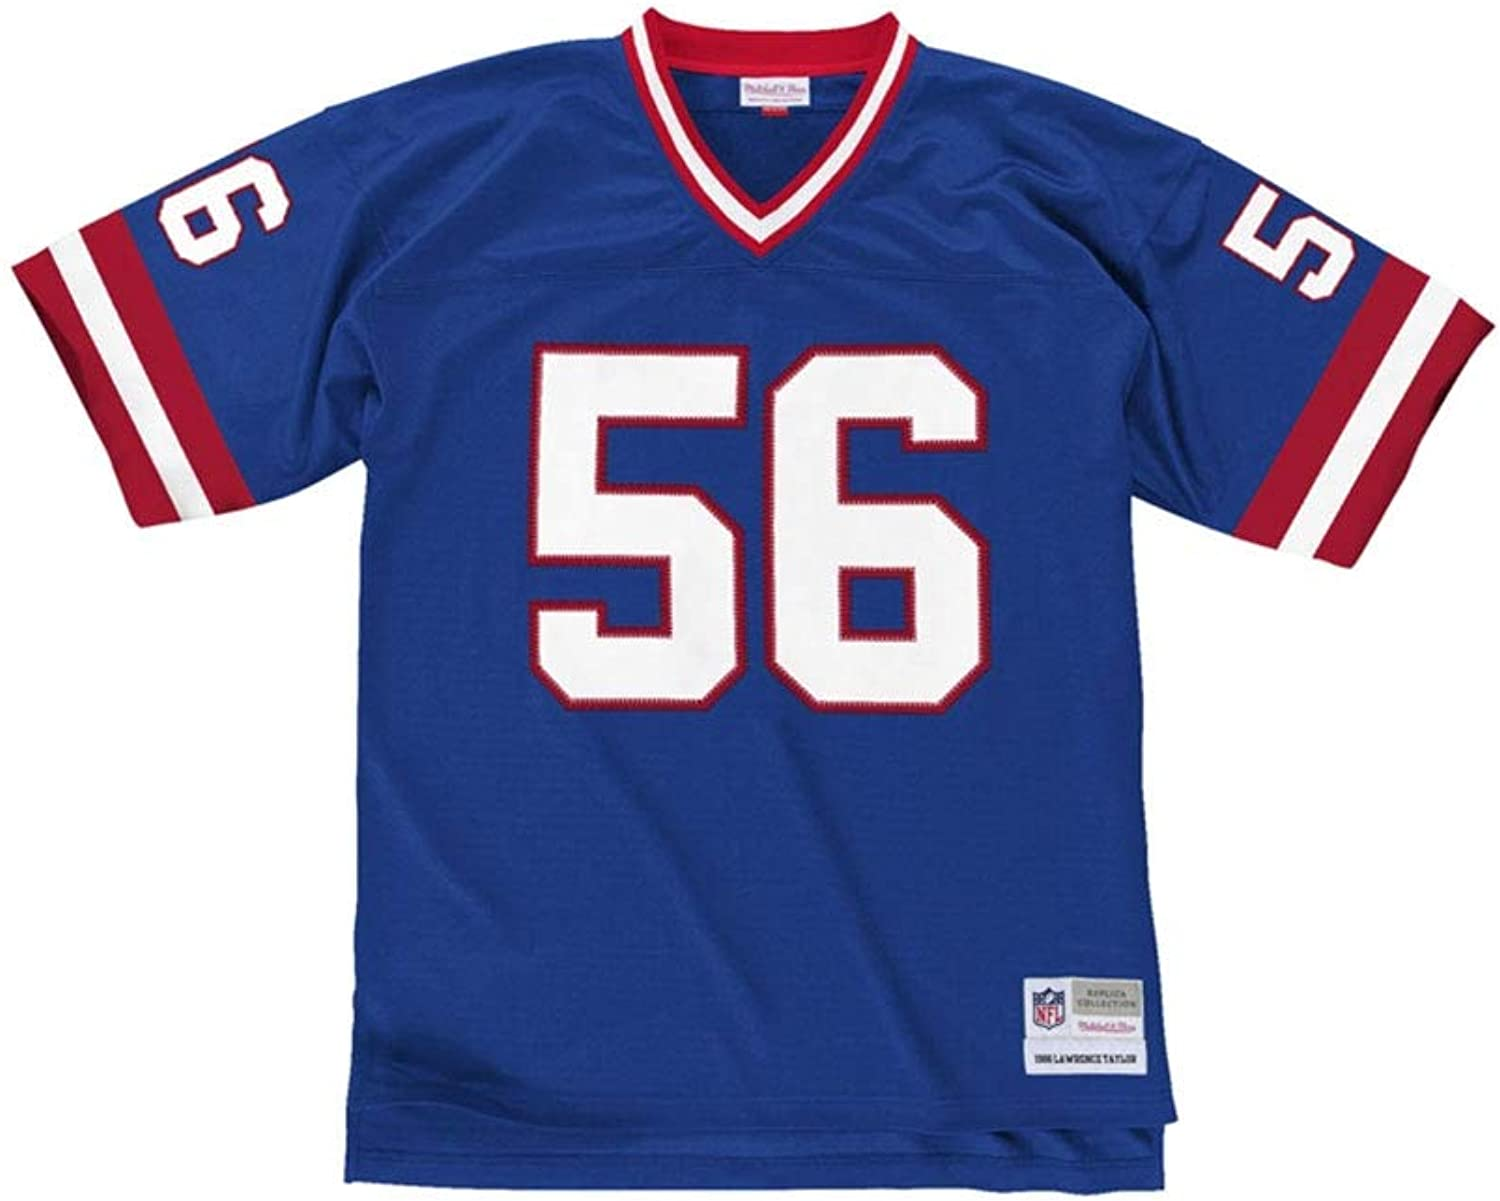 Mitchell & Ness New York Giants Trikot - Lawrence Taylor NFL Legacy Replica Jersey B07Q3Z2QL1  Angenehmes Gefühl